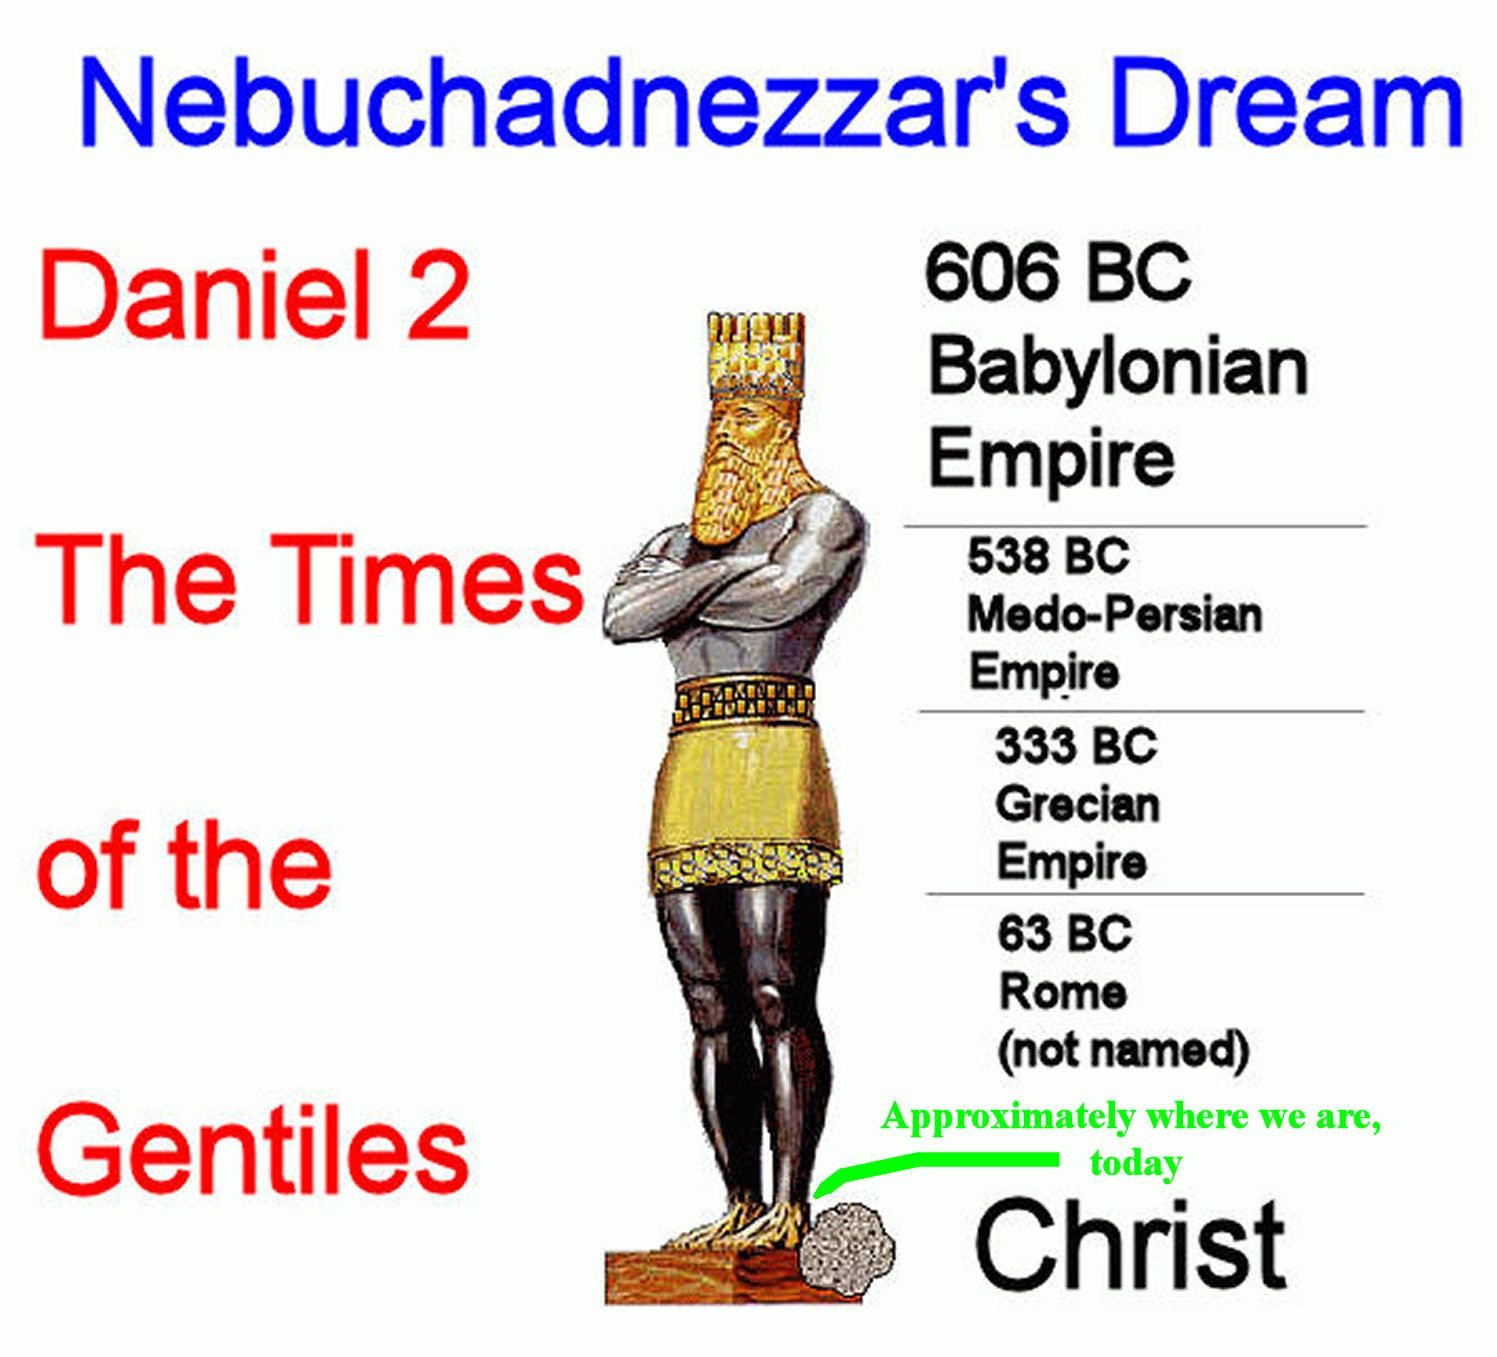 Image Of The Statue In King Nebuchadnezzar S Dream